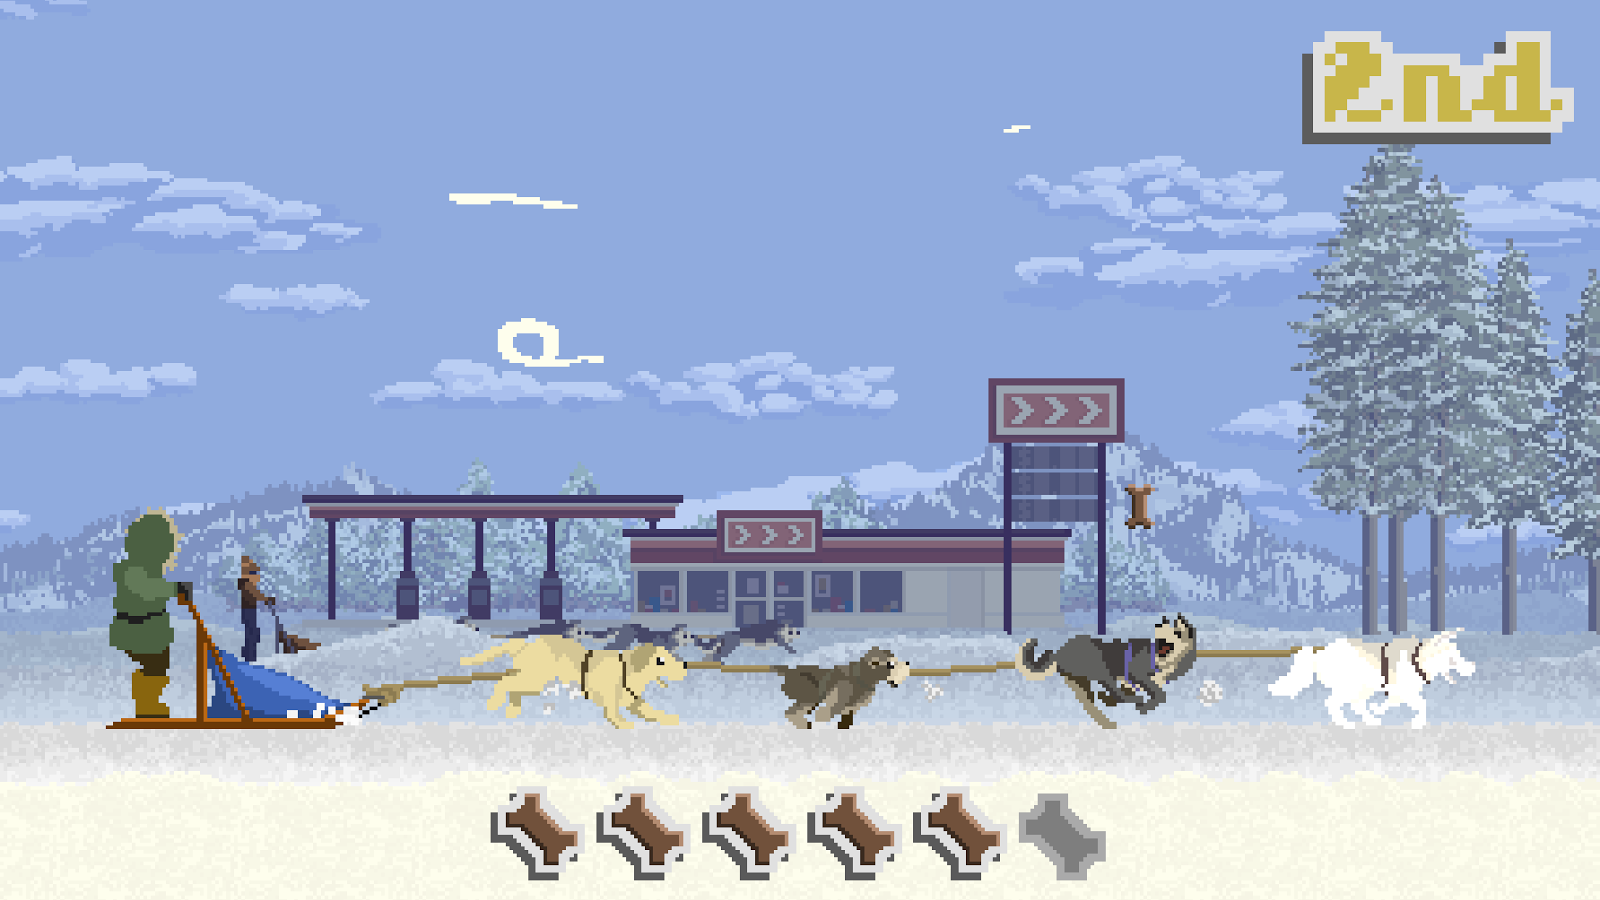 Dog Sled Saga Screenshot 1